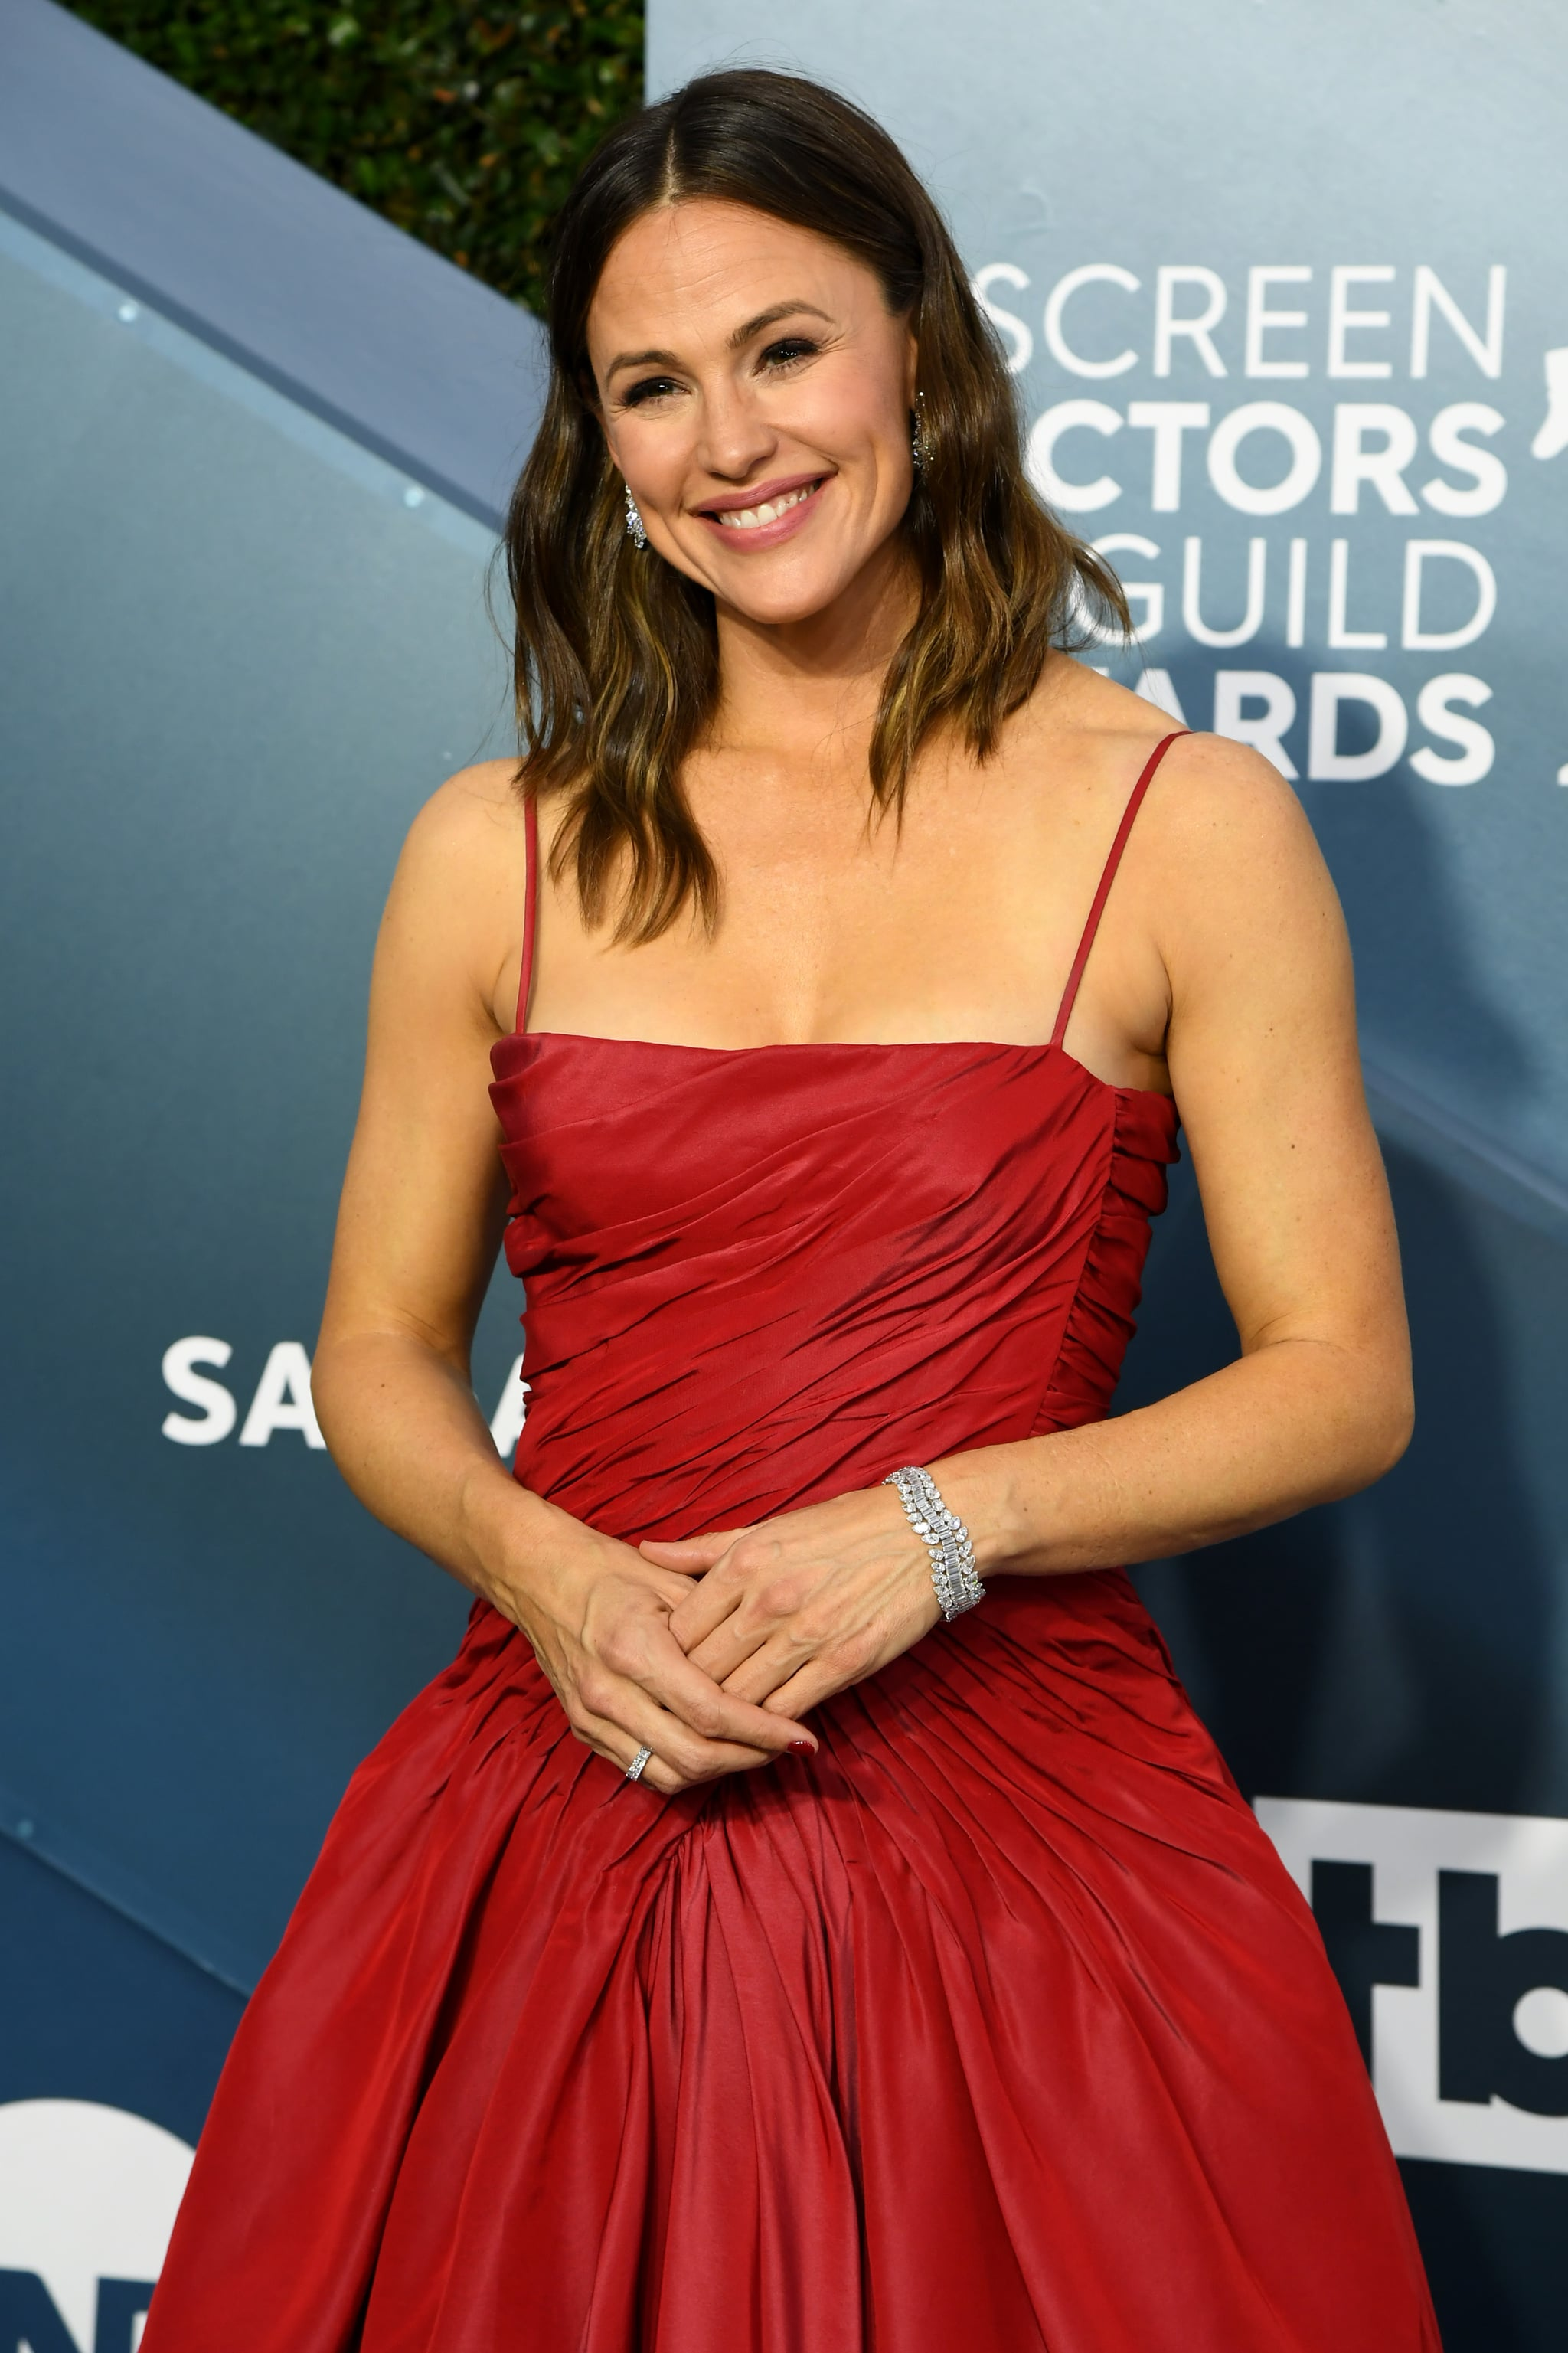 LOS ANGELES, CALIFORNIA - JANUARY 19: Jennifer Garner attends the 26th Annual Screen Actors Guild Awards at The Shrine Auditorium on January 19, 2020 in Los Angeles, California. (Photo by Jeff Kravitz/FilmMagic)